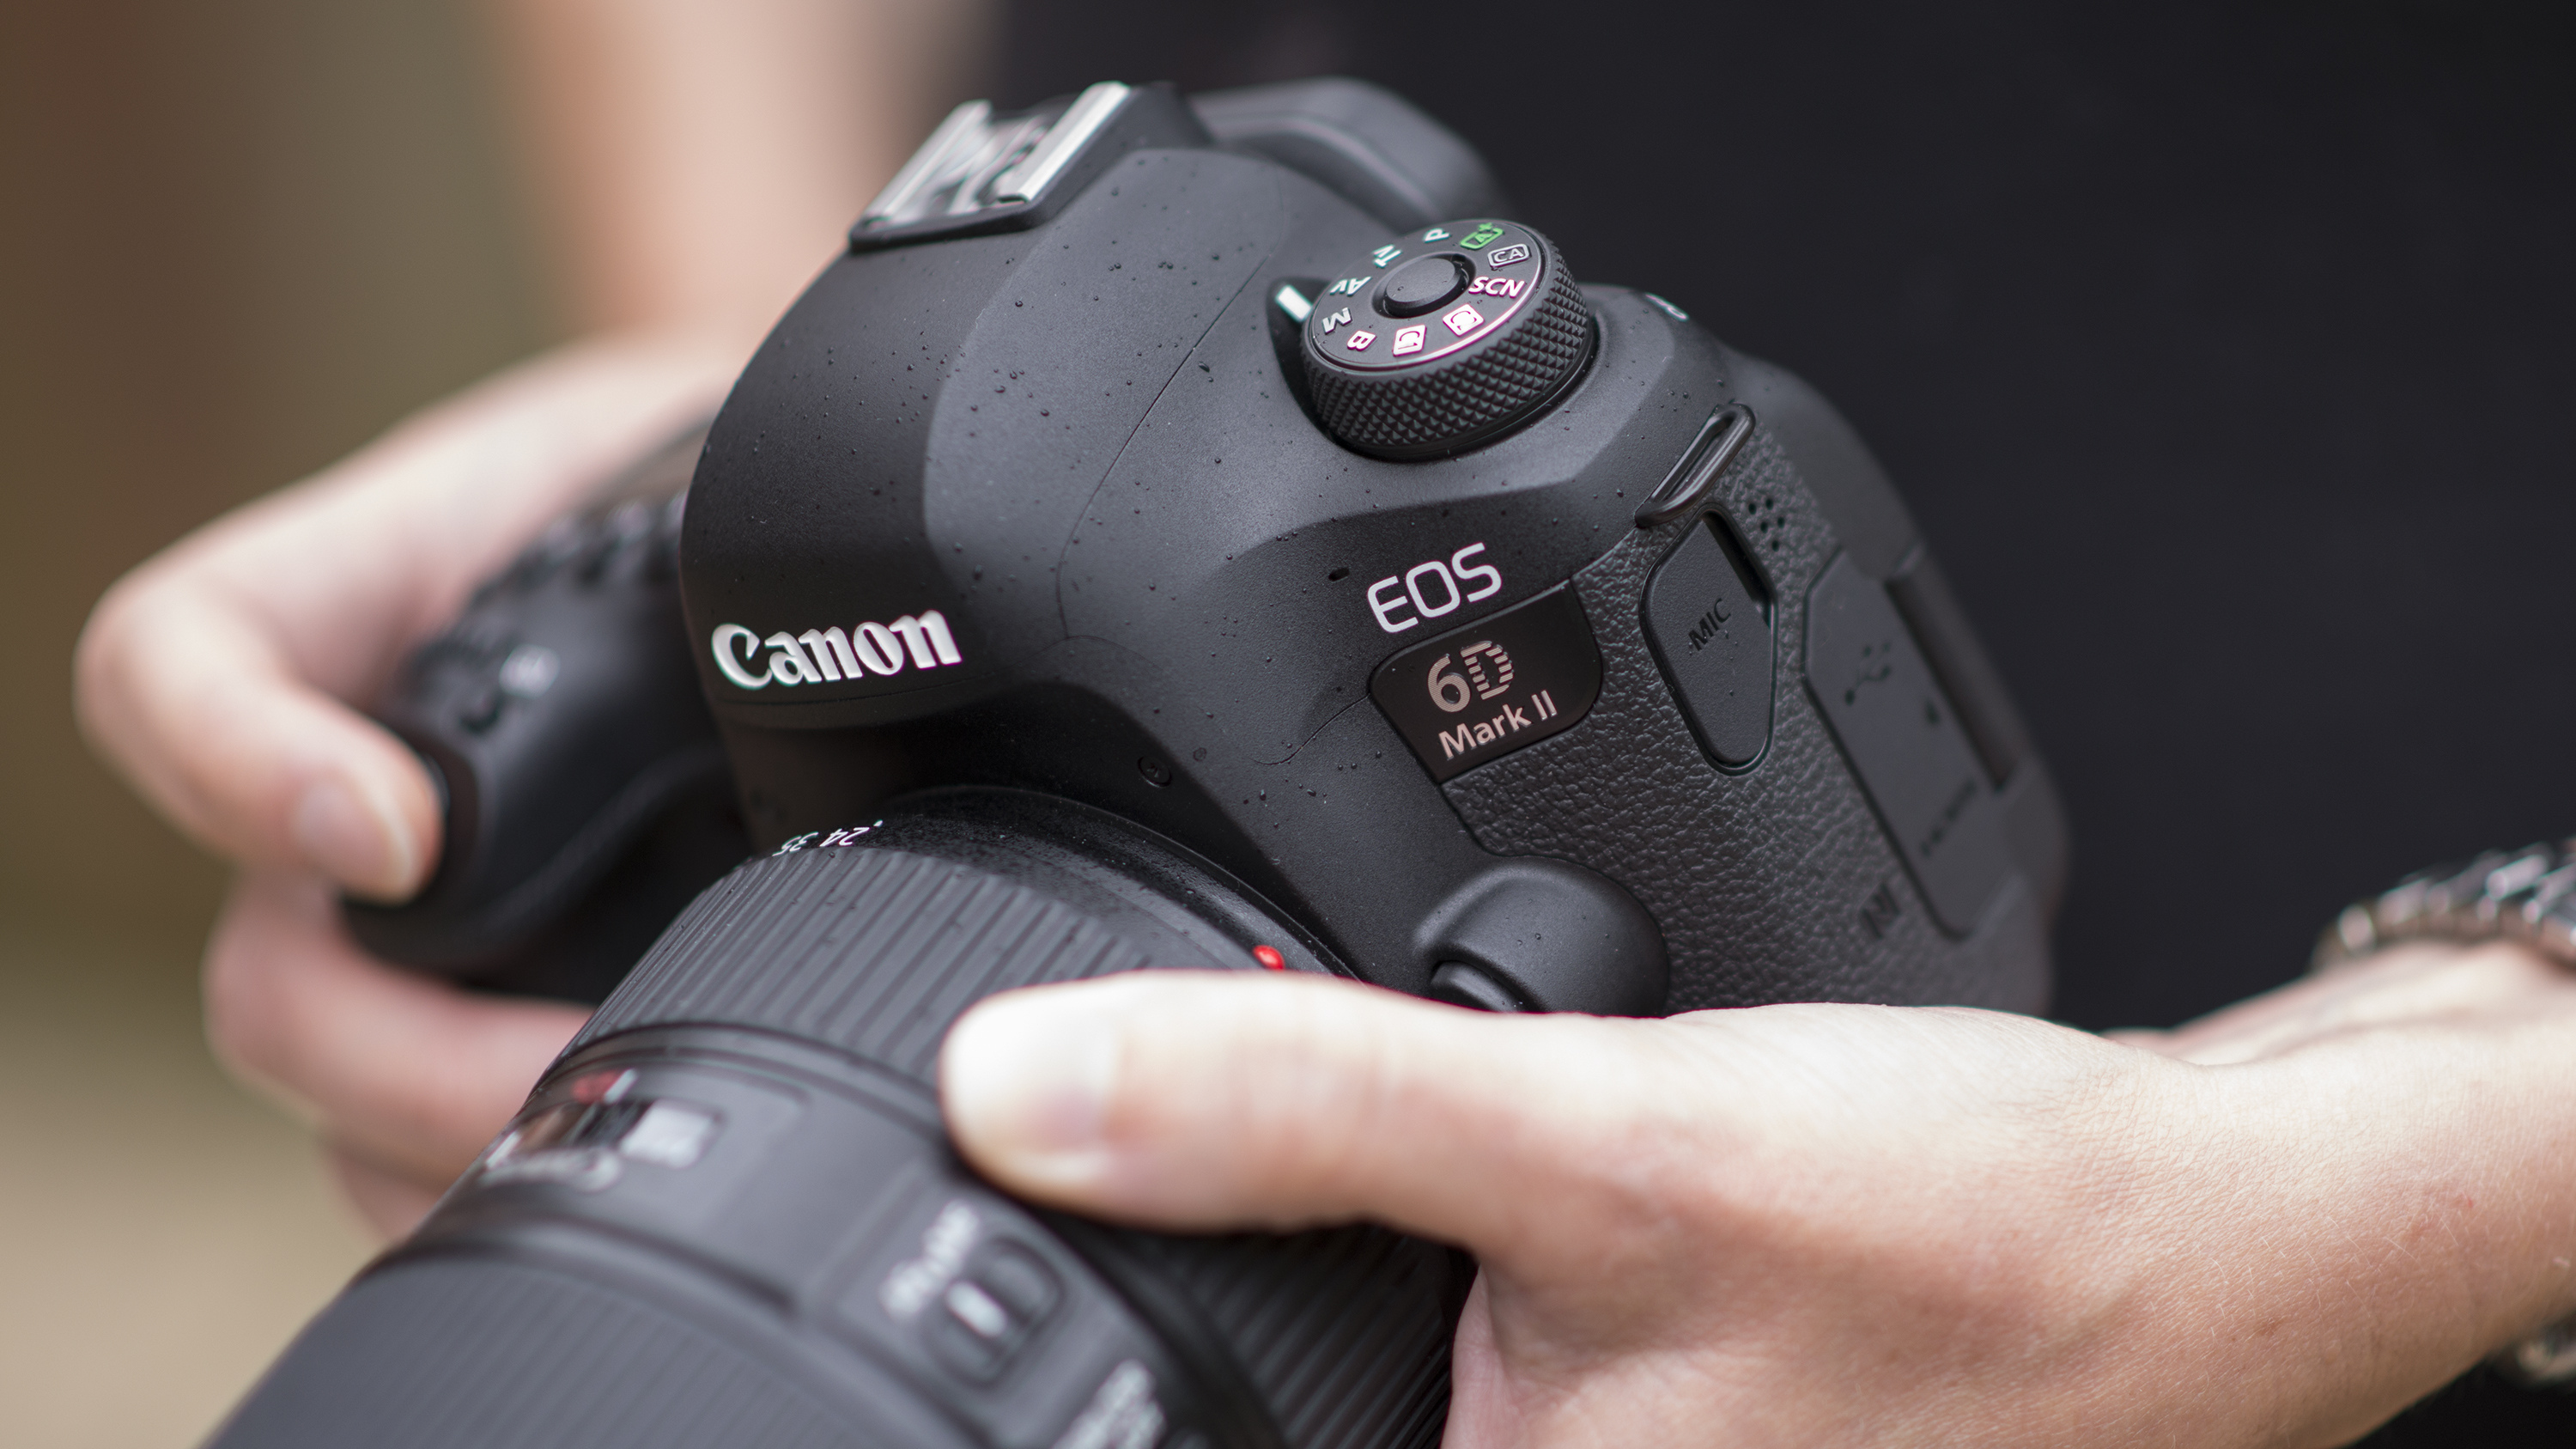 10 ways to supercharge your Canon DSLR camera | TechRadar